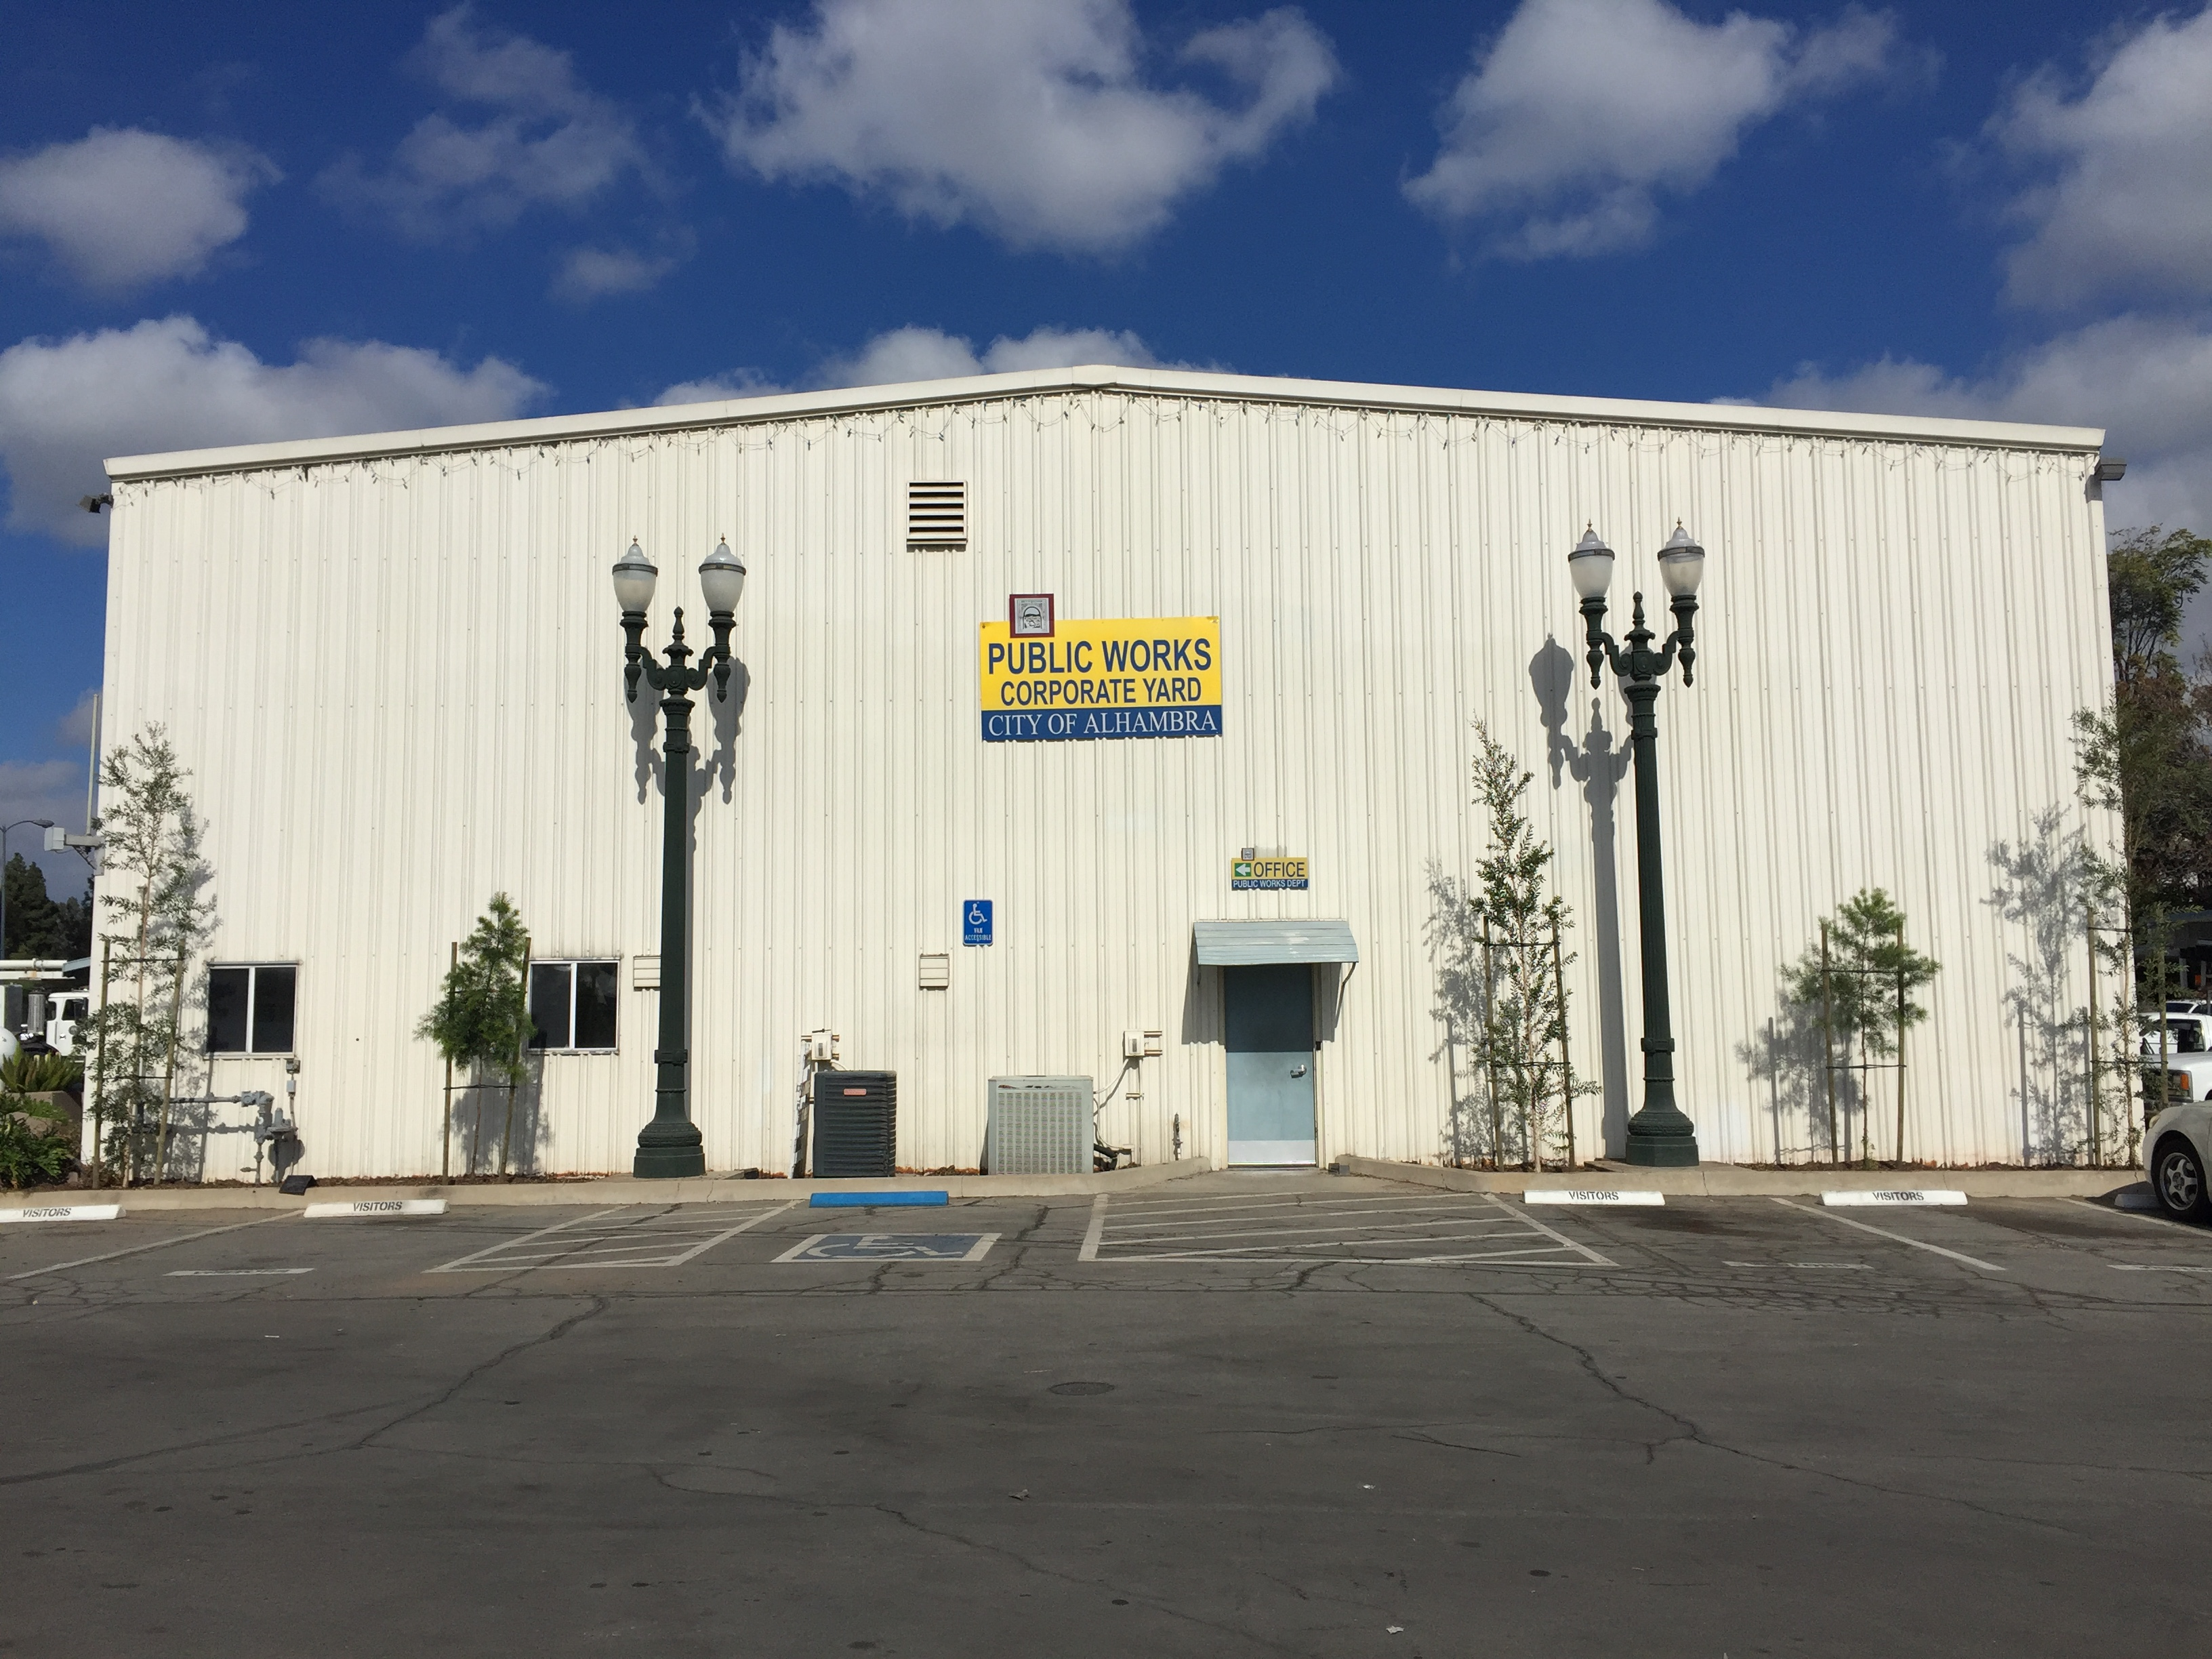 Public Works Corporate Yard, 900 South New Avenue, Alhambra, CA 91801